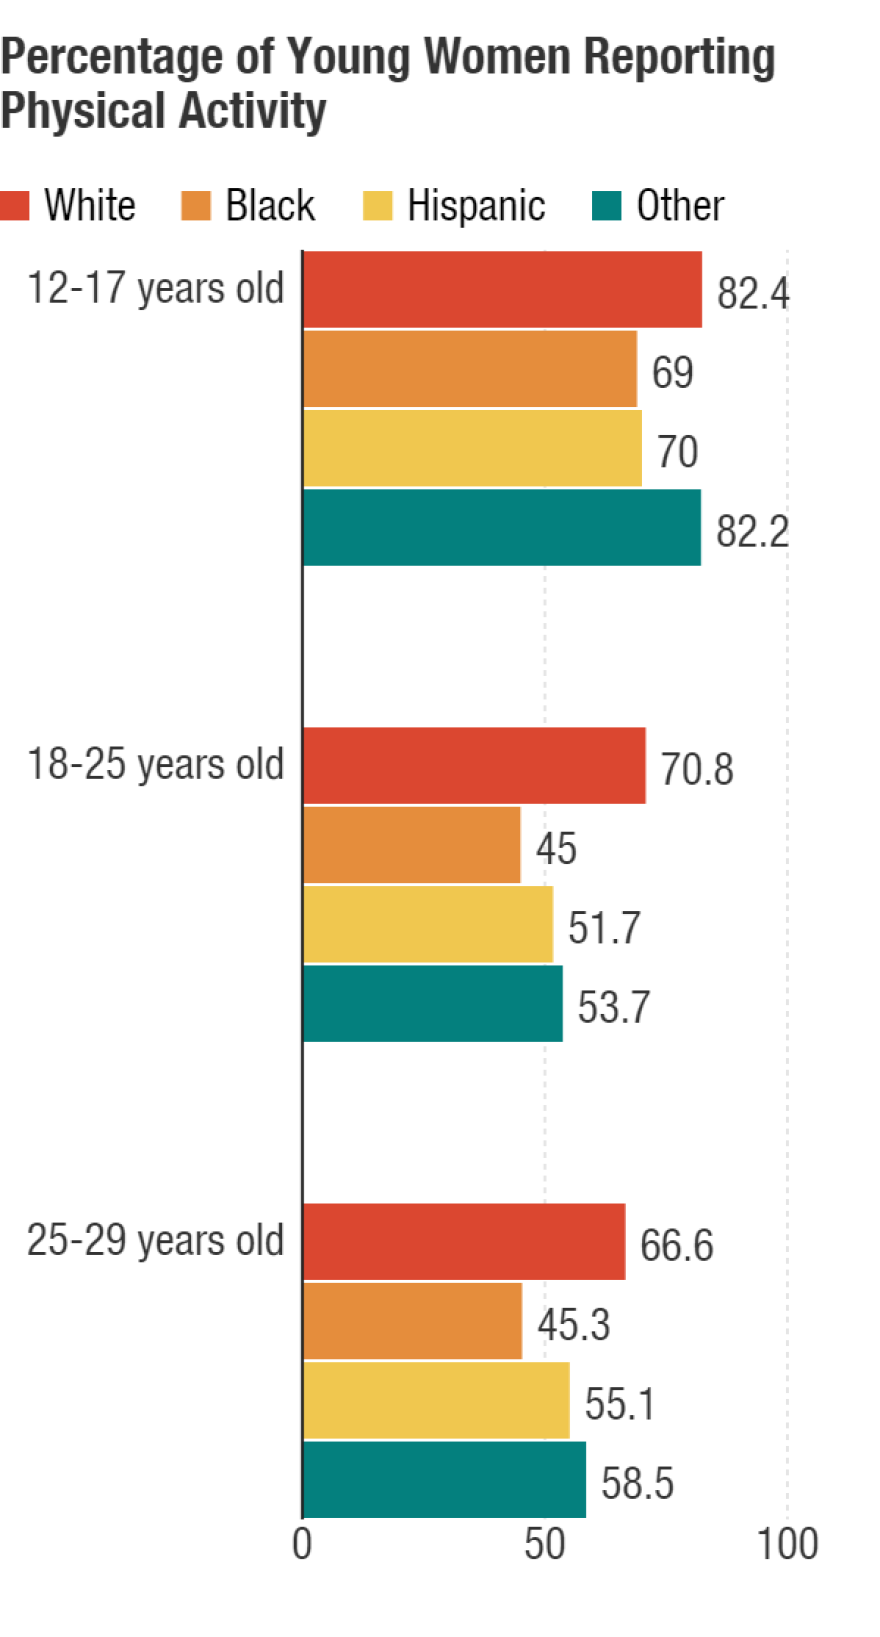 Percentage of Young Women Reporting Any Moderate or Vigorous Physical Activity by Age and Race/Ethnicity